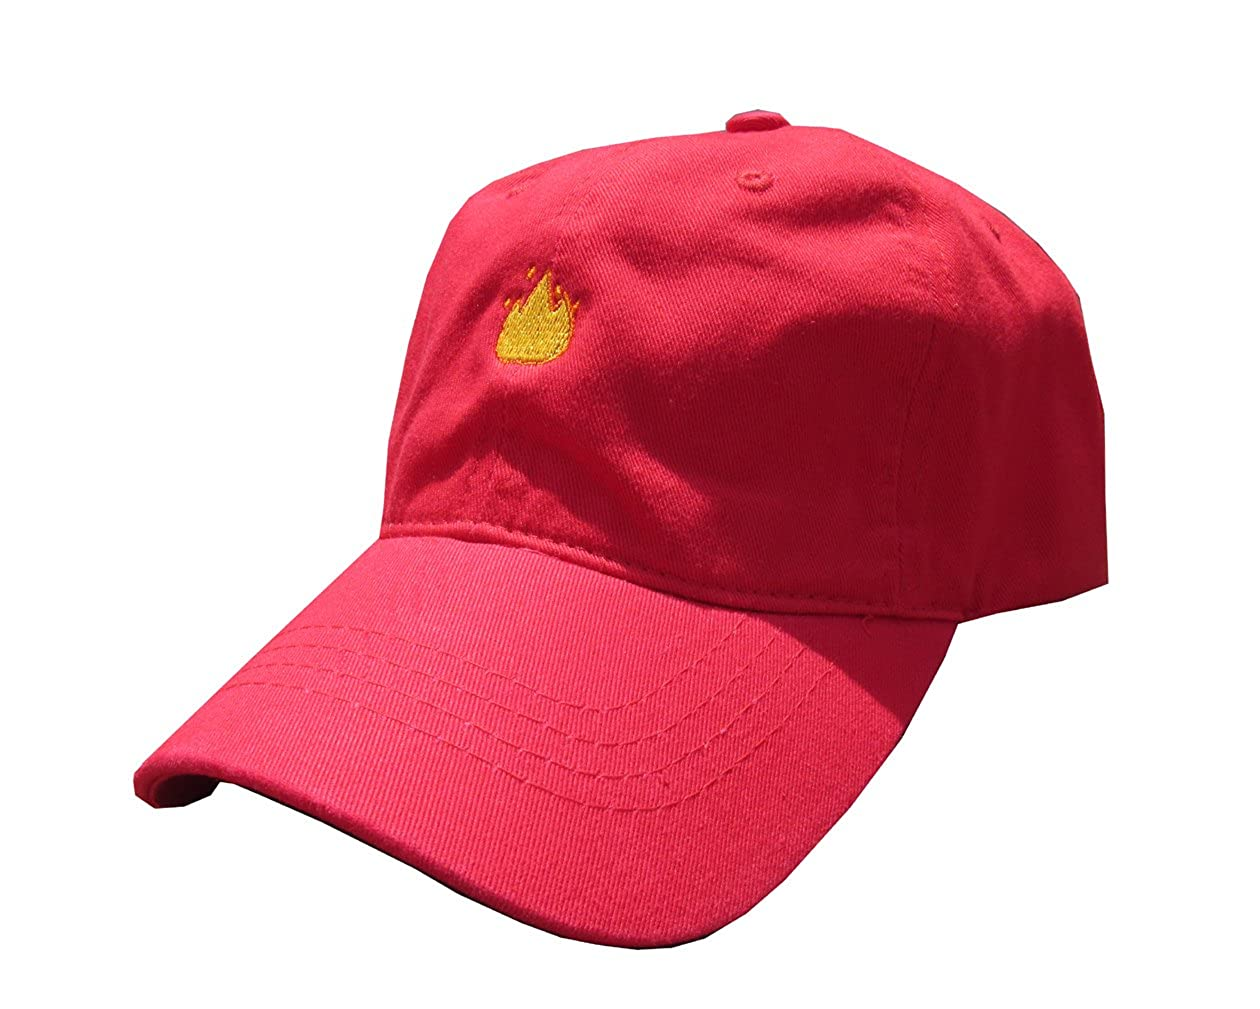 7b1bc0c3e68 Lit Fire Emoji Meme Red Unstructured Twill Cotton Low Profile Yeezus Dad  Hat Cap at Amazon Men s Clothing store